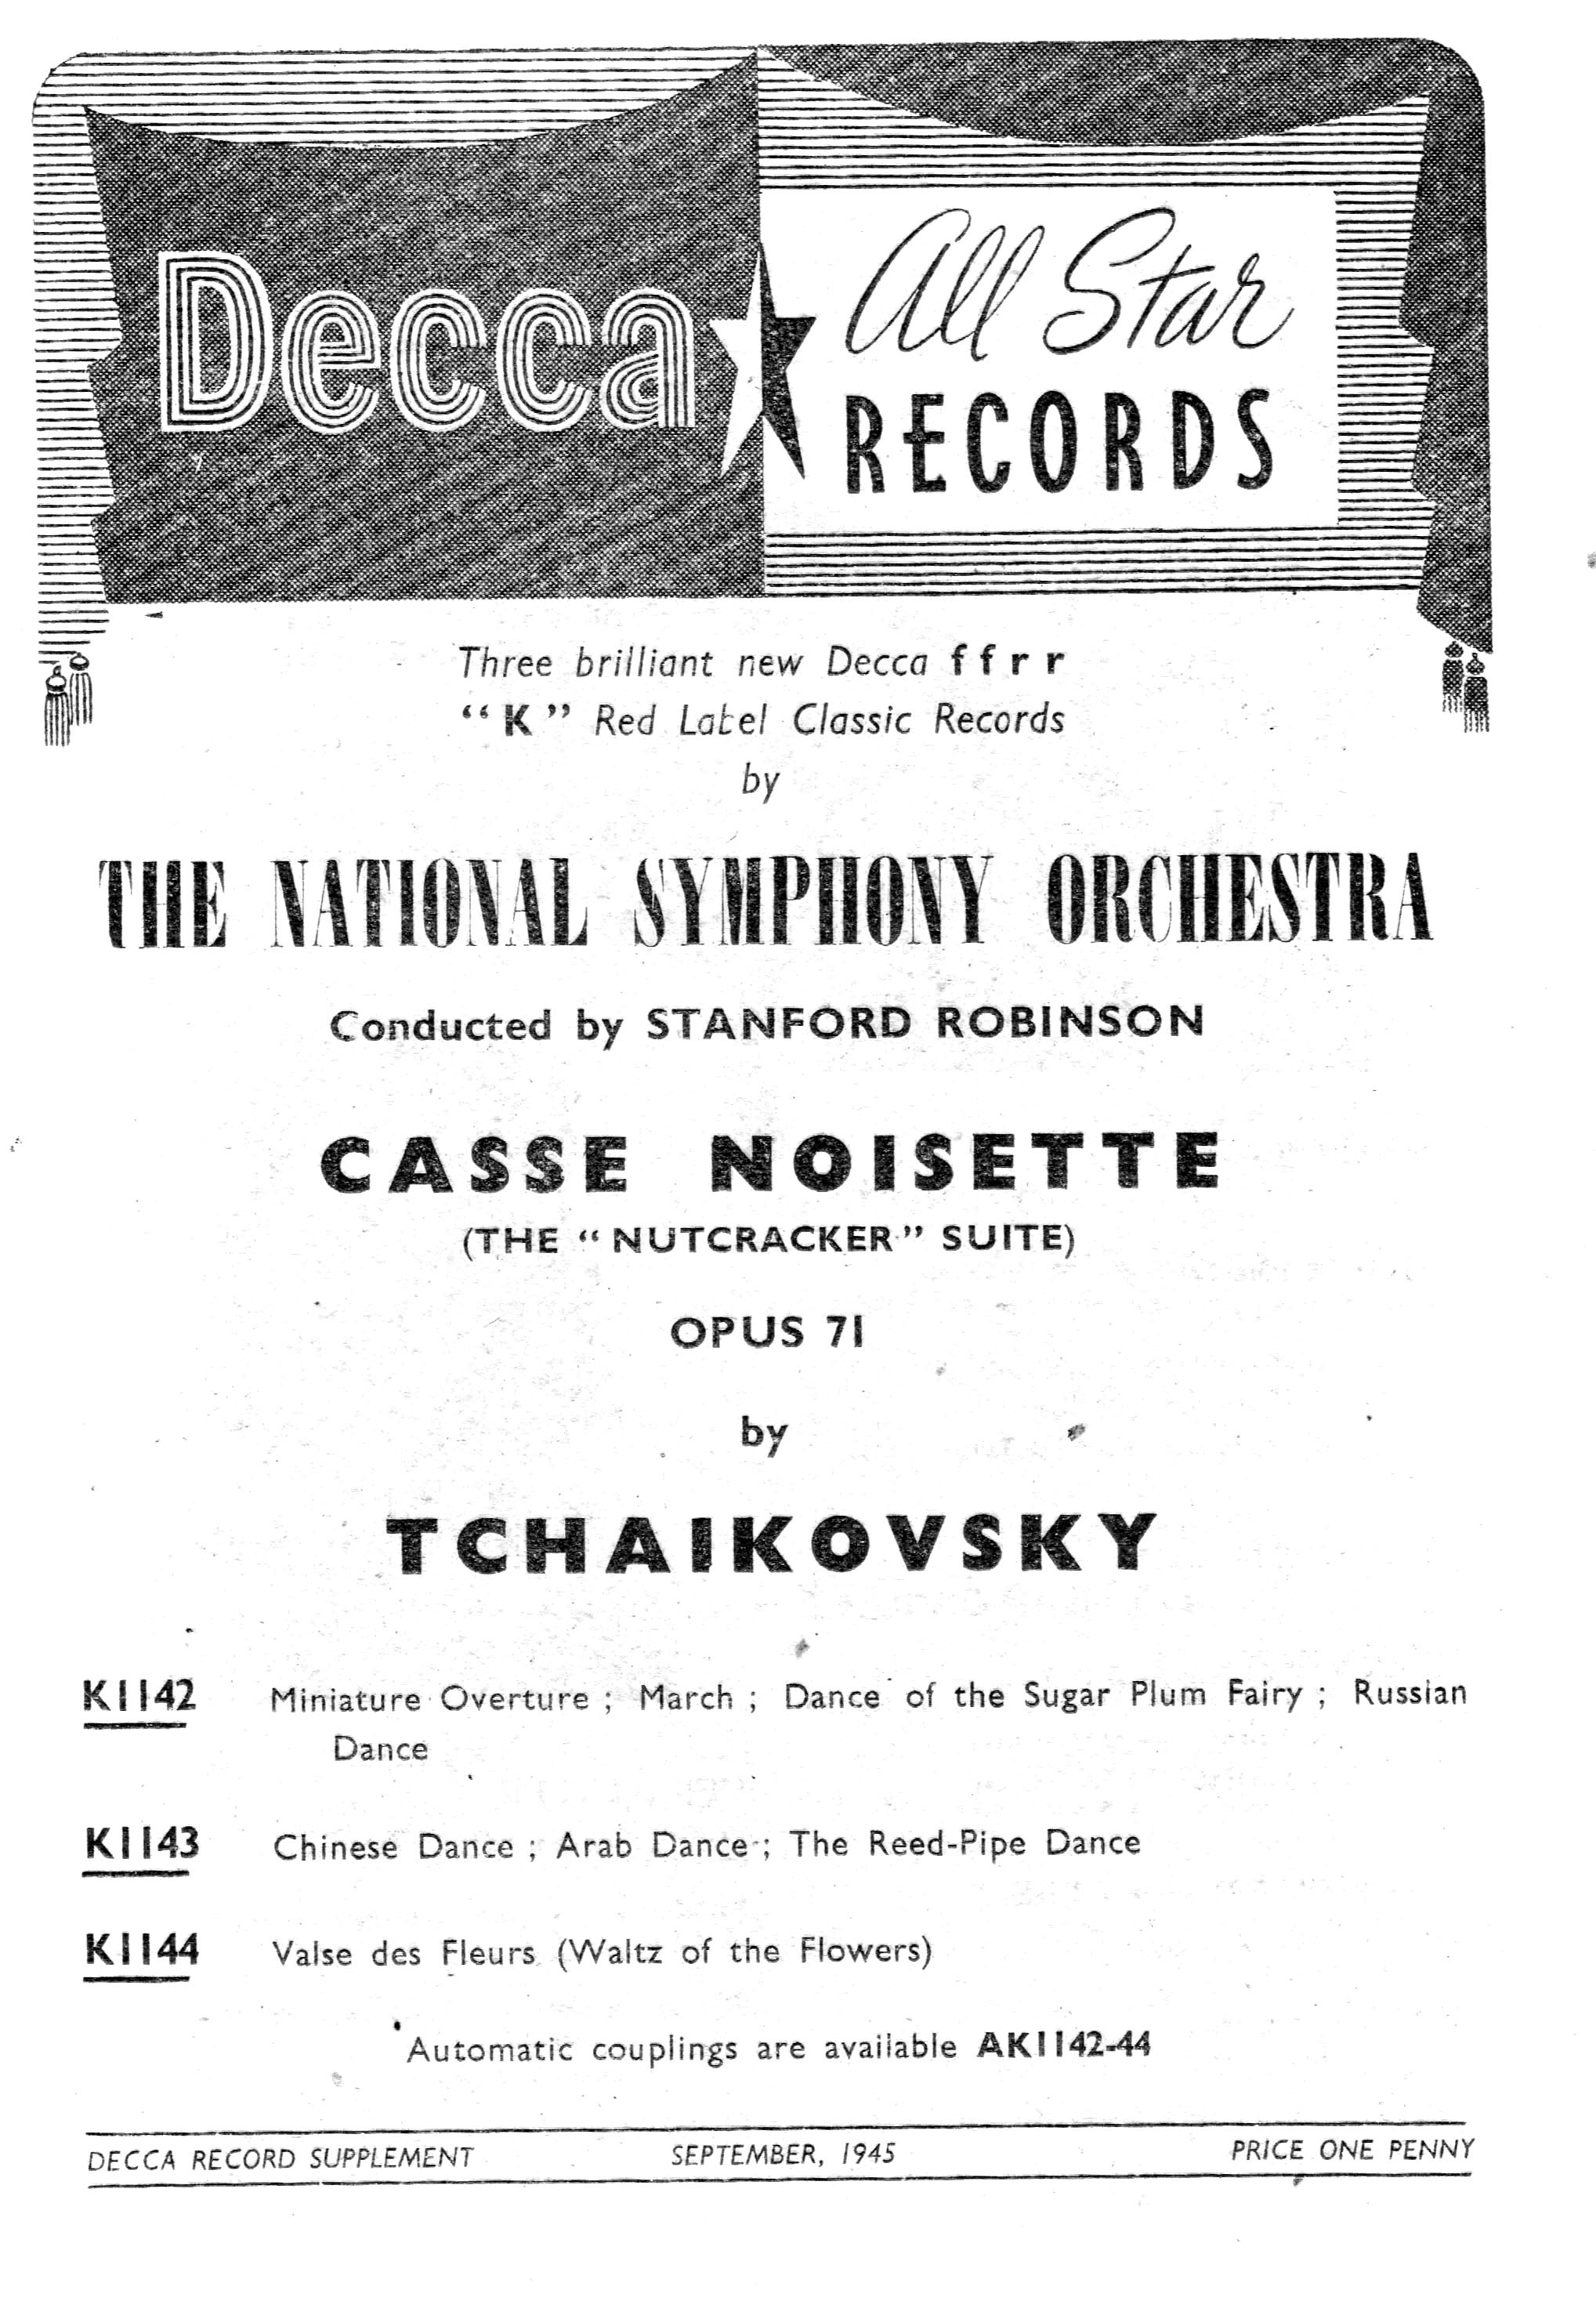 Decaa Sptember 1945 supplement announcing the release of Tchaikovsky's Nutcracker Siute played by the National Symphony Orcestra condutor Stamford Robinson